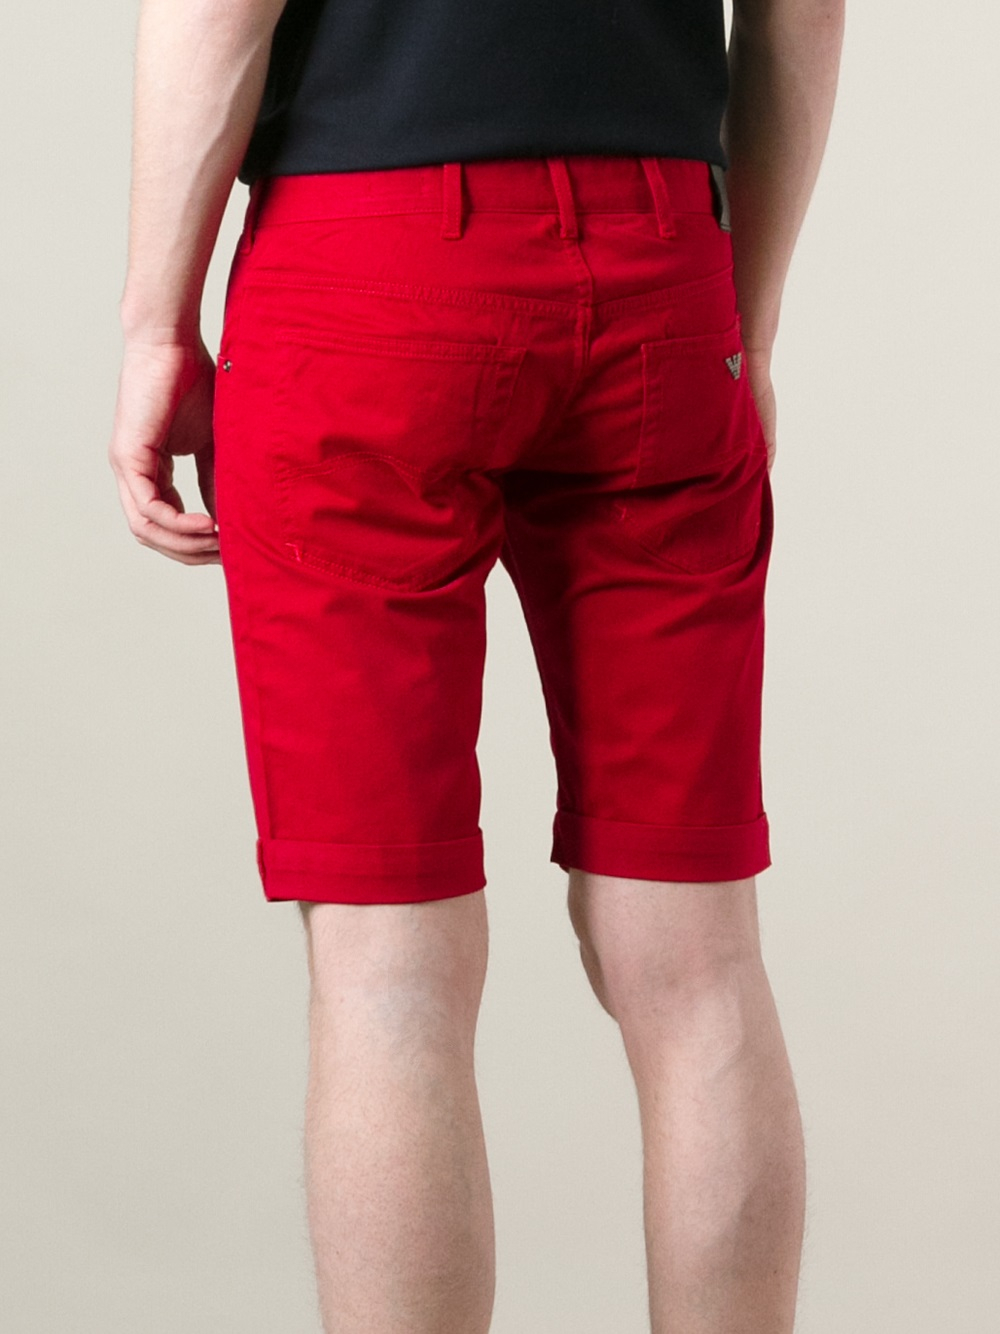 Find great deals on eBay for red denim shorts. Shop with confidence.